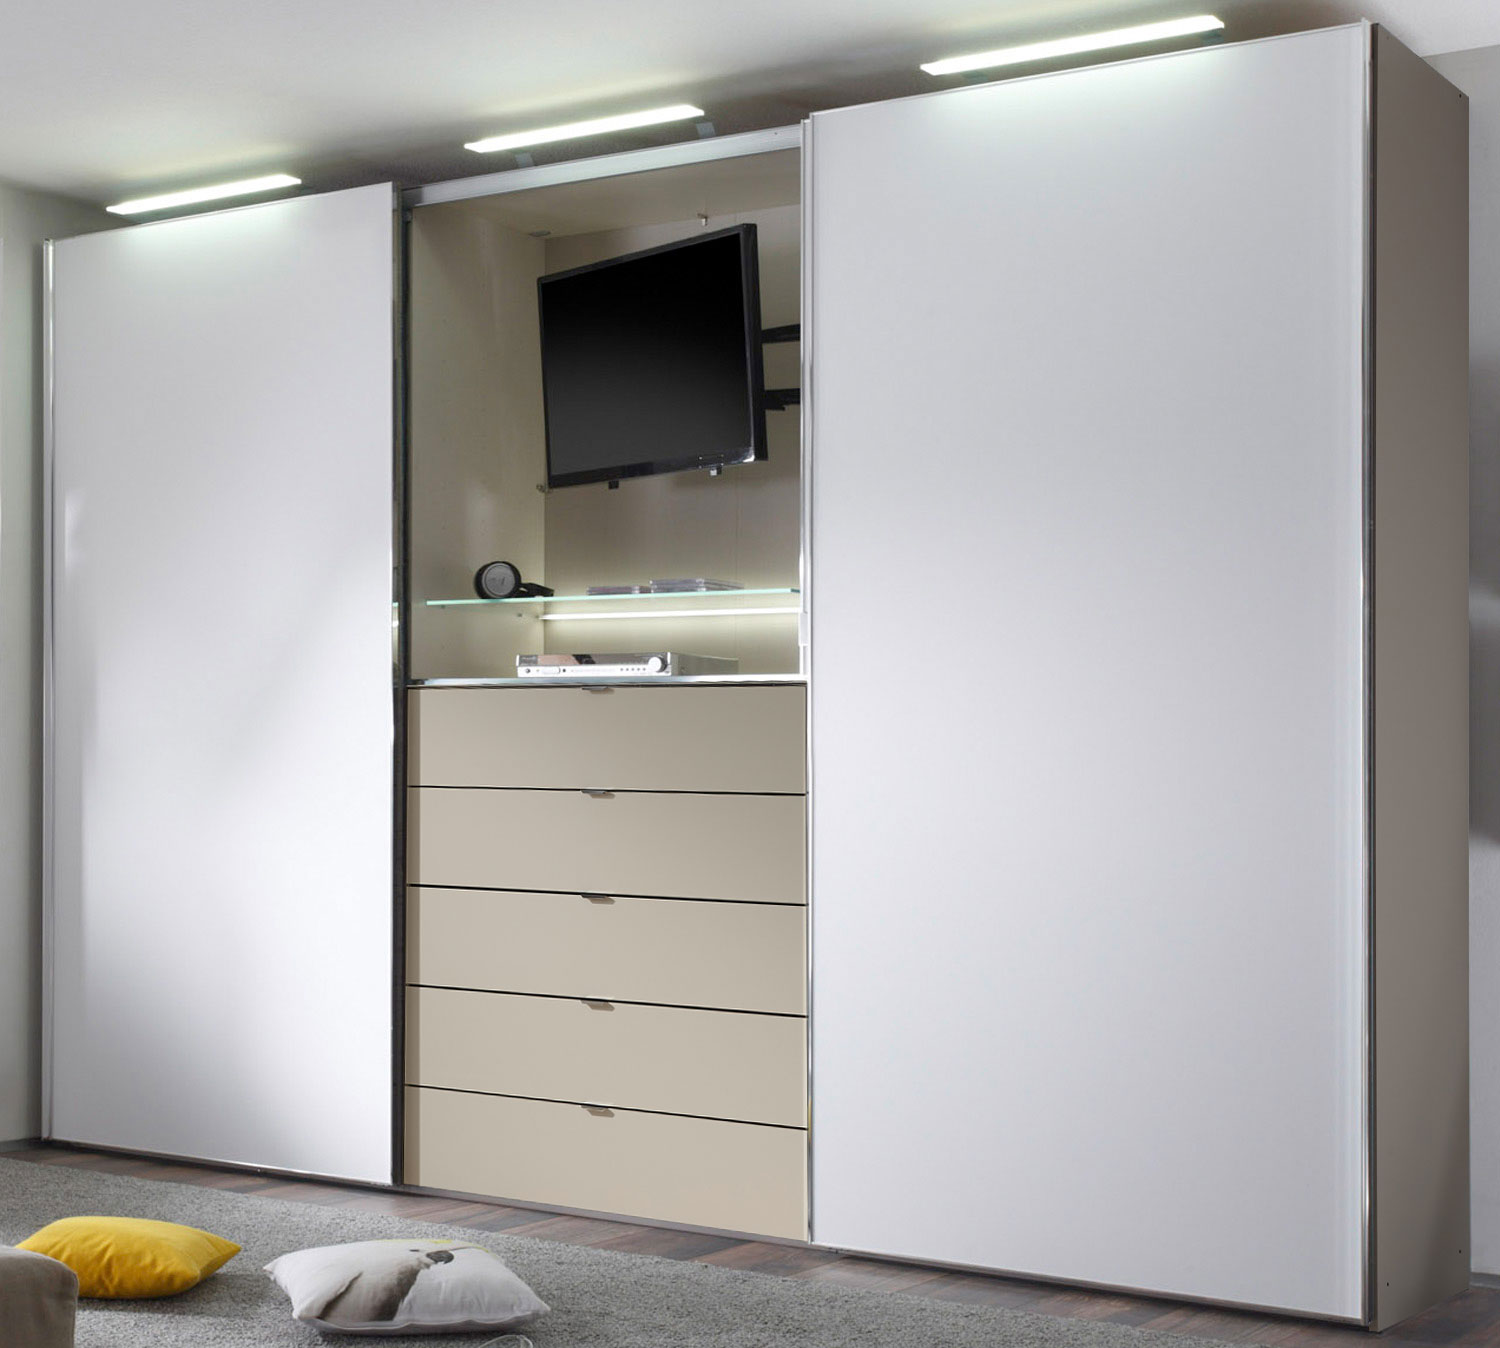 staud media light kleiderschrank mit tv fach viele farben m belmeile24. Black Bedroom Furniture Sets. Home Design Ideas